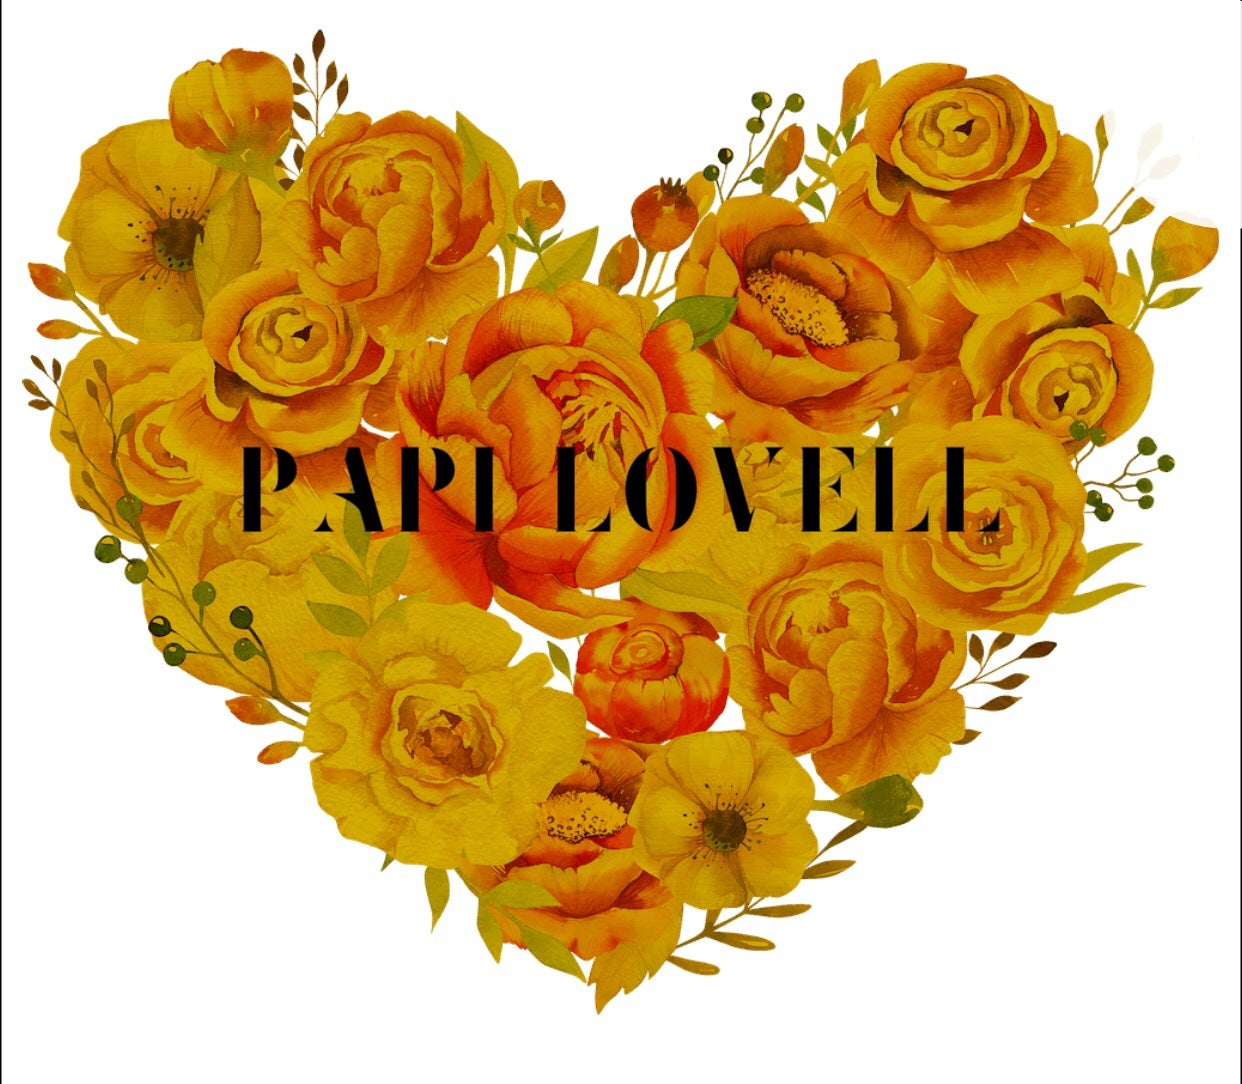 Papi Lovell's account image